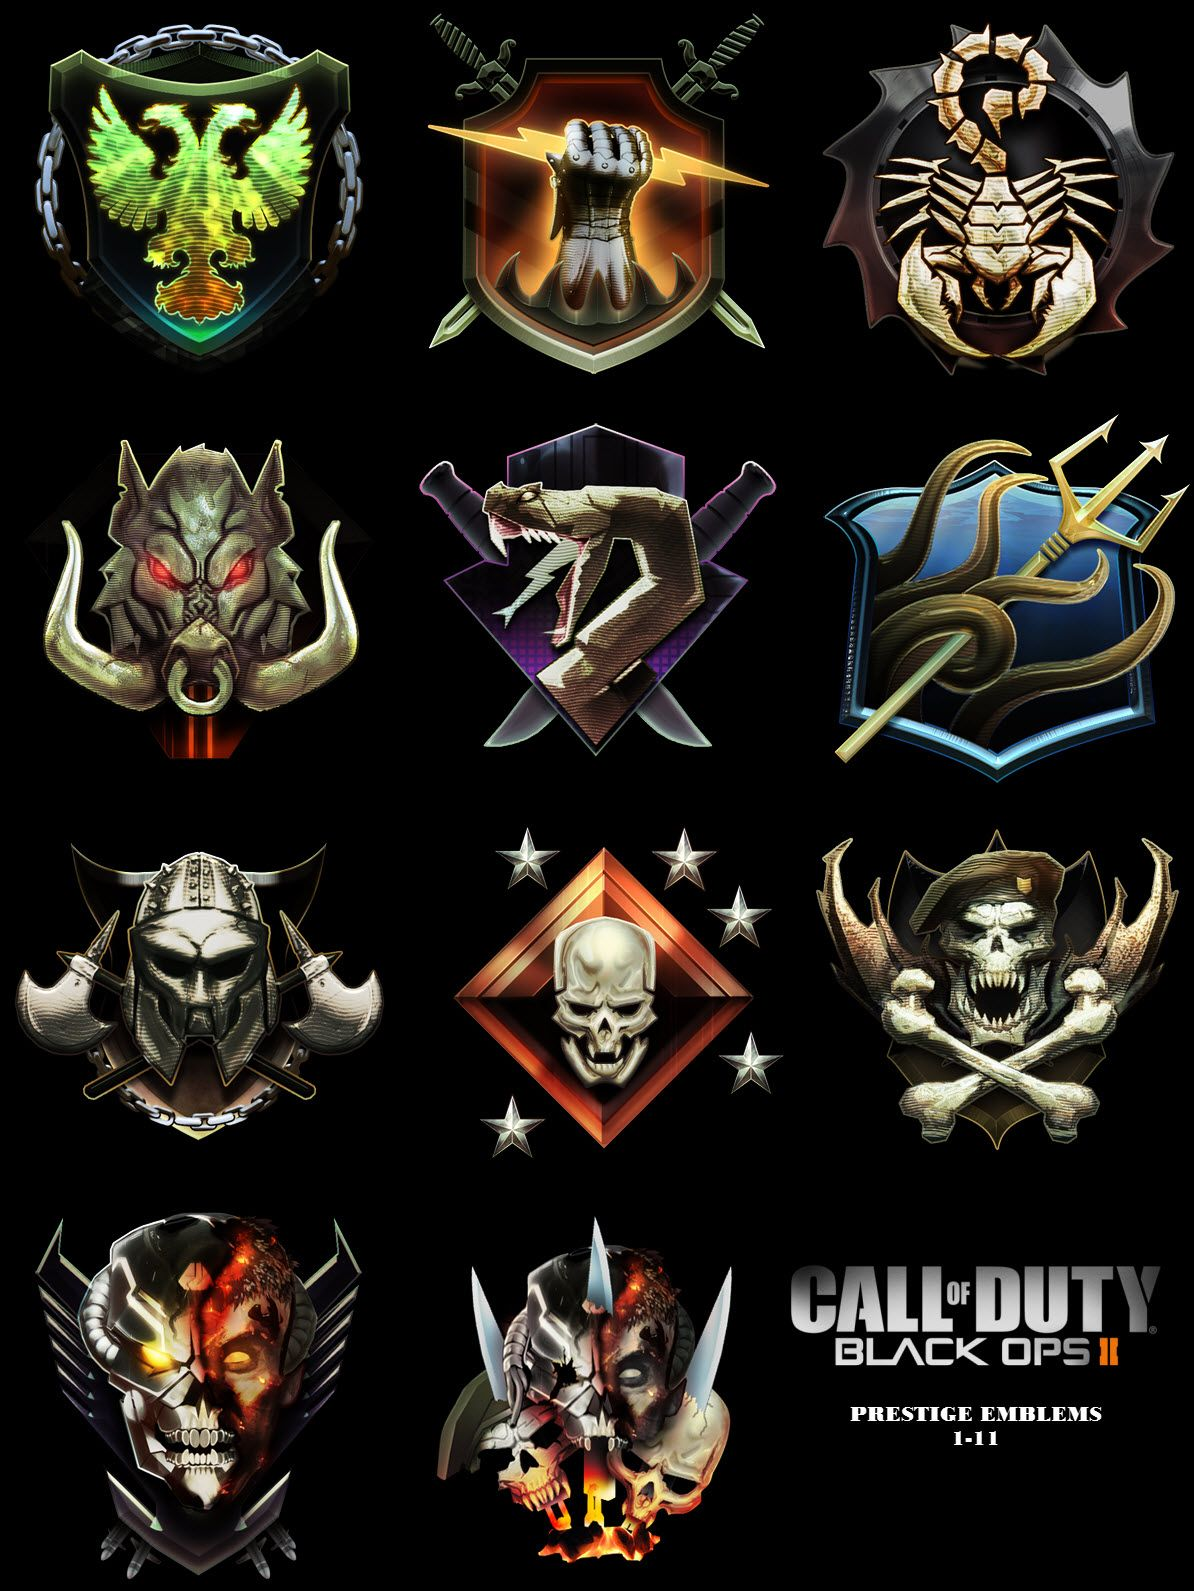 Cool Call Of Duty Emblems : emblems, Chart, Prestige, Emblems., Which, Favorite?, Duty,, Black